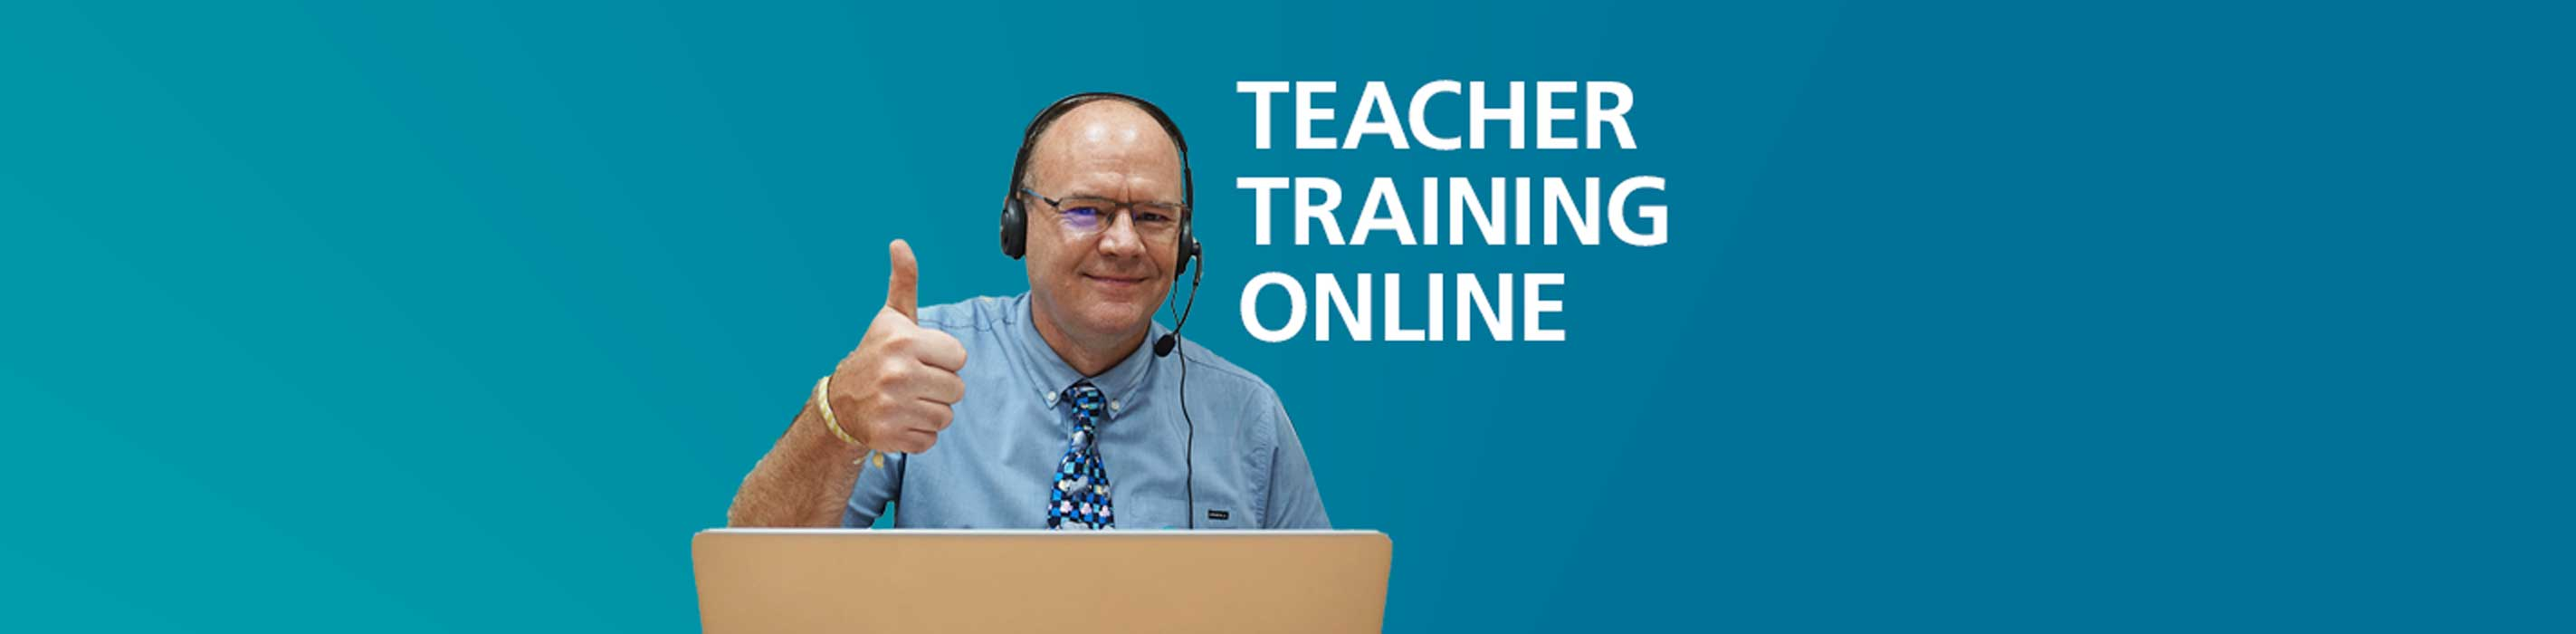 Teacher Training Online